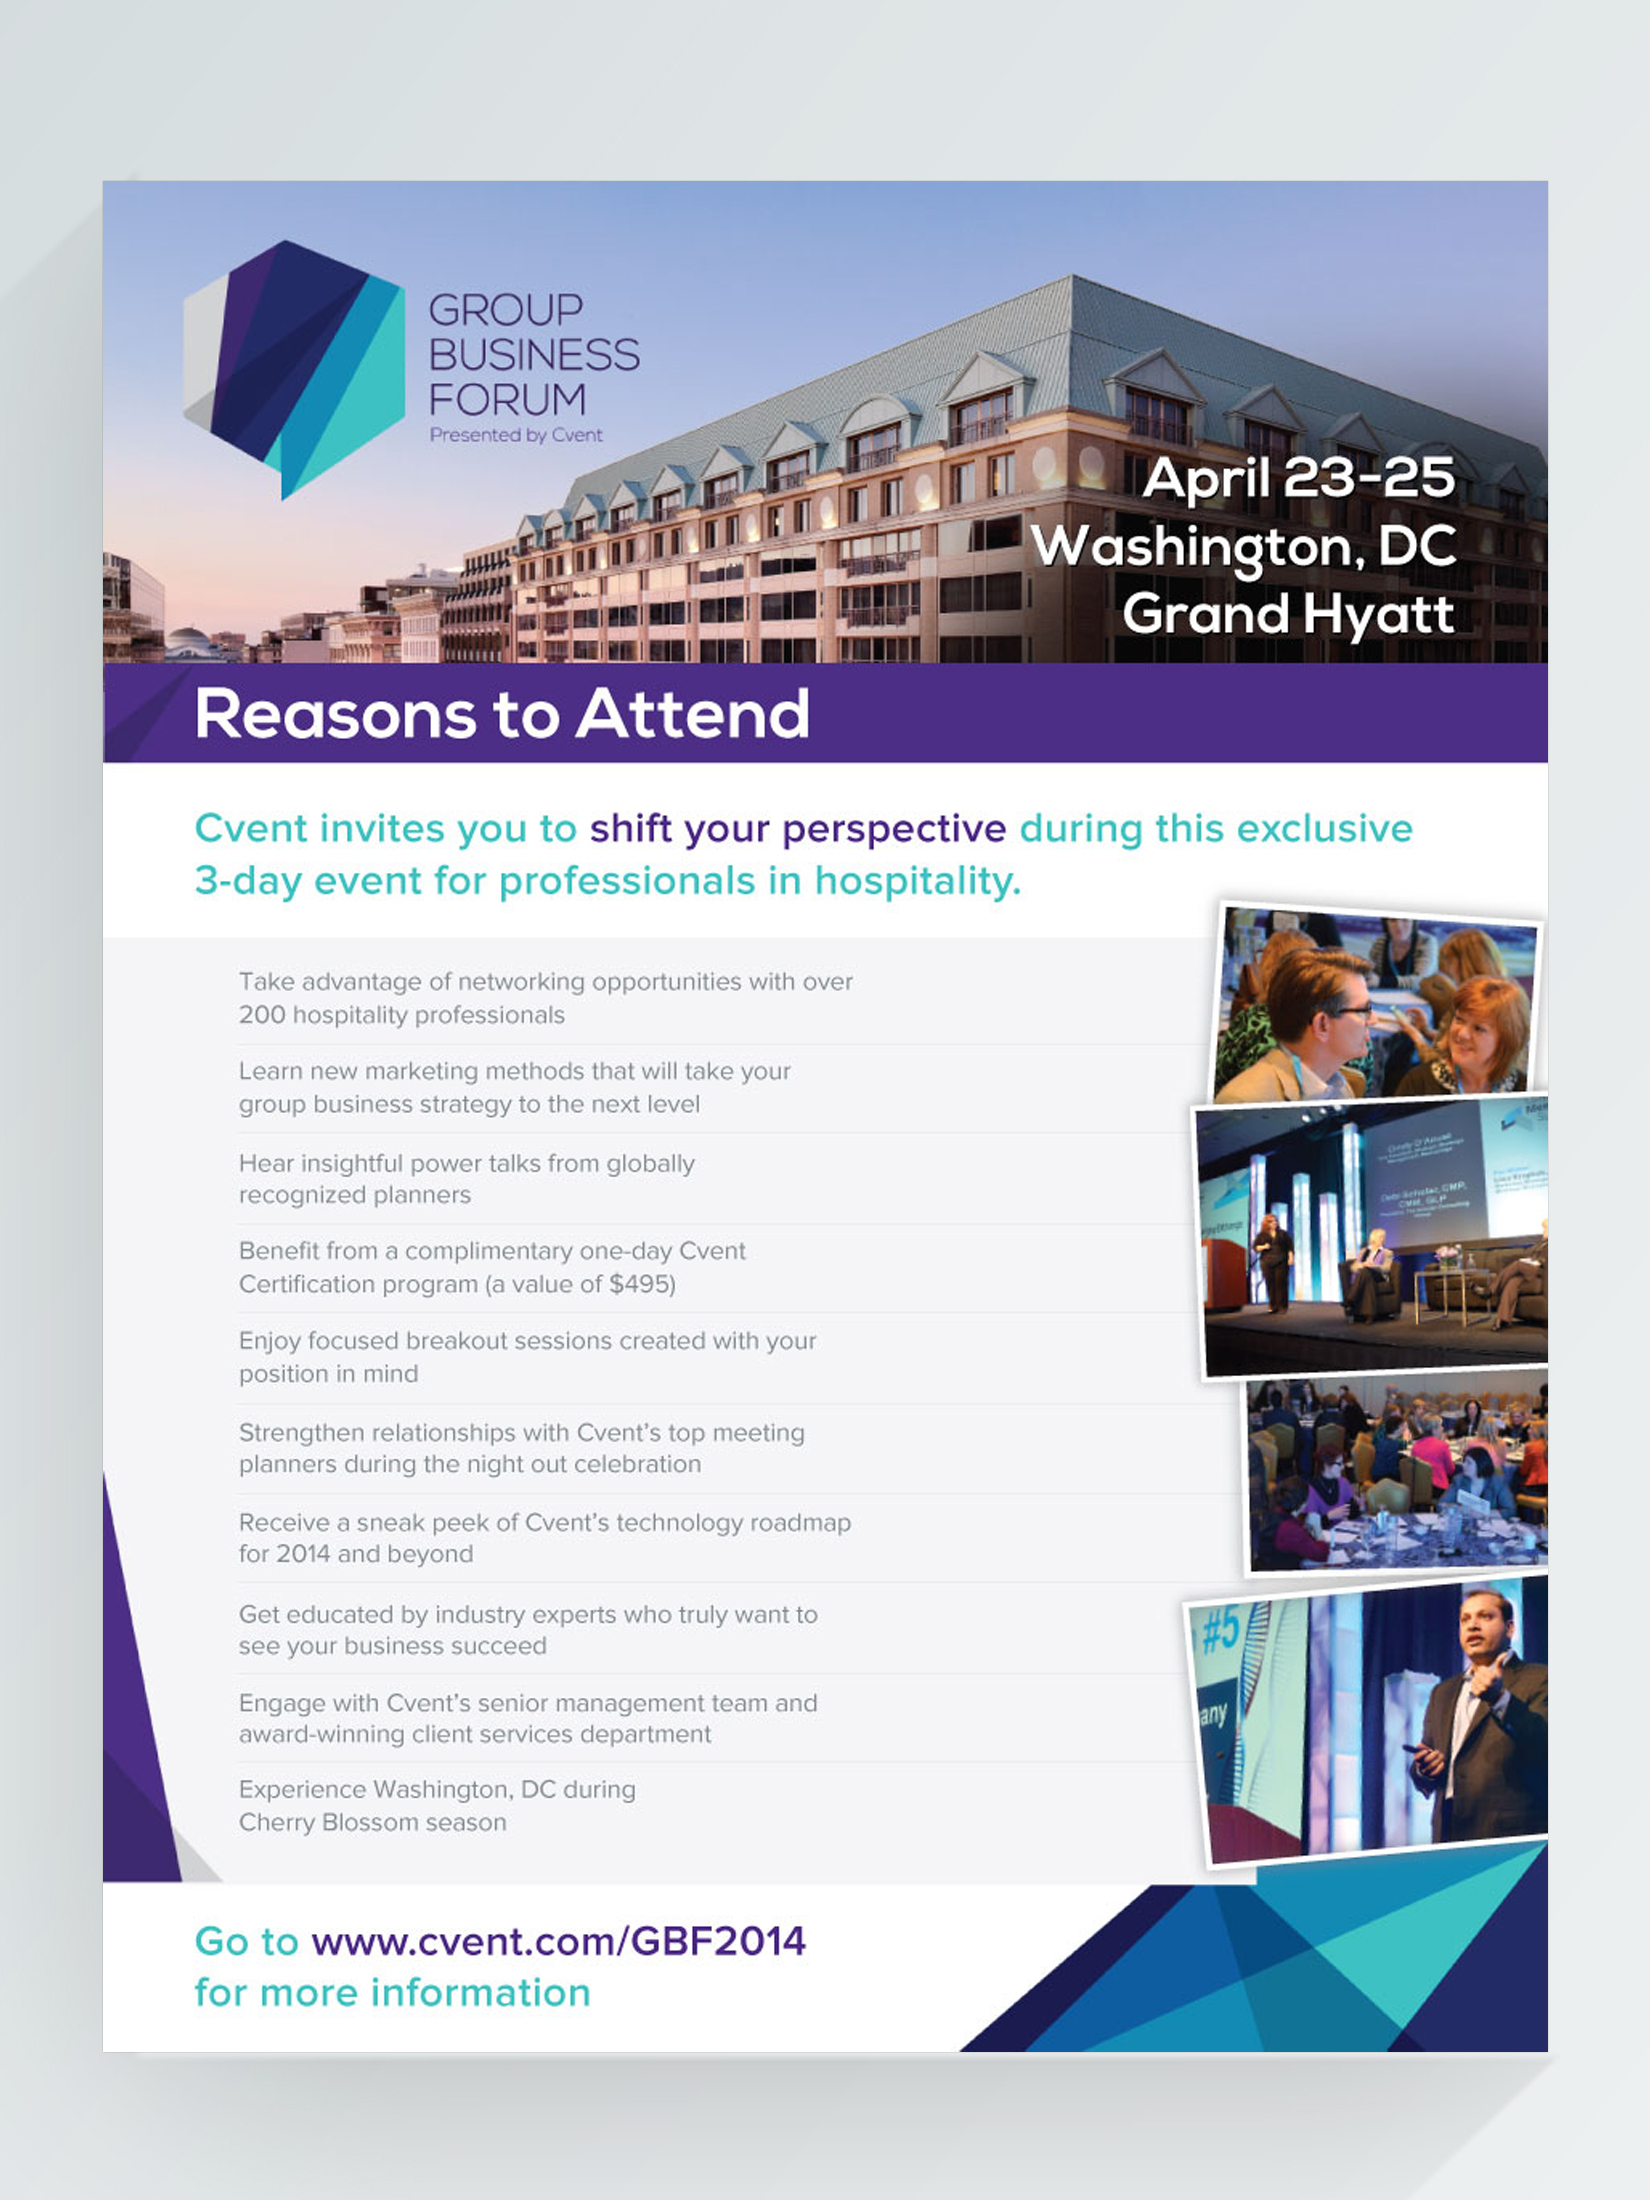 Reasons to attend promotional document